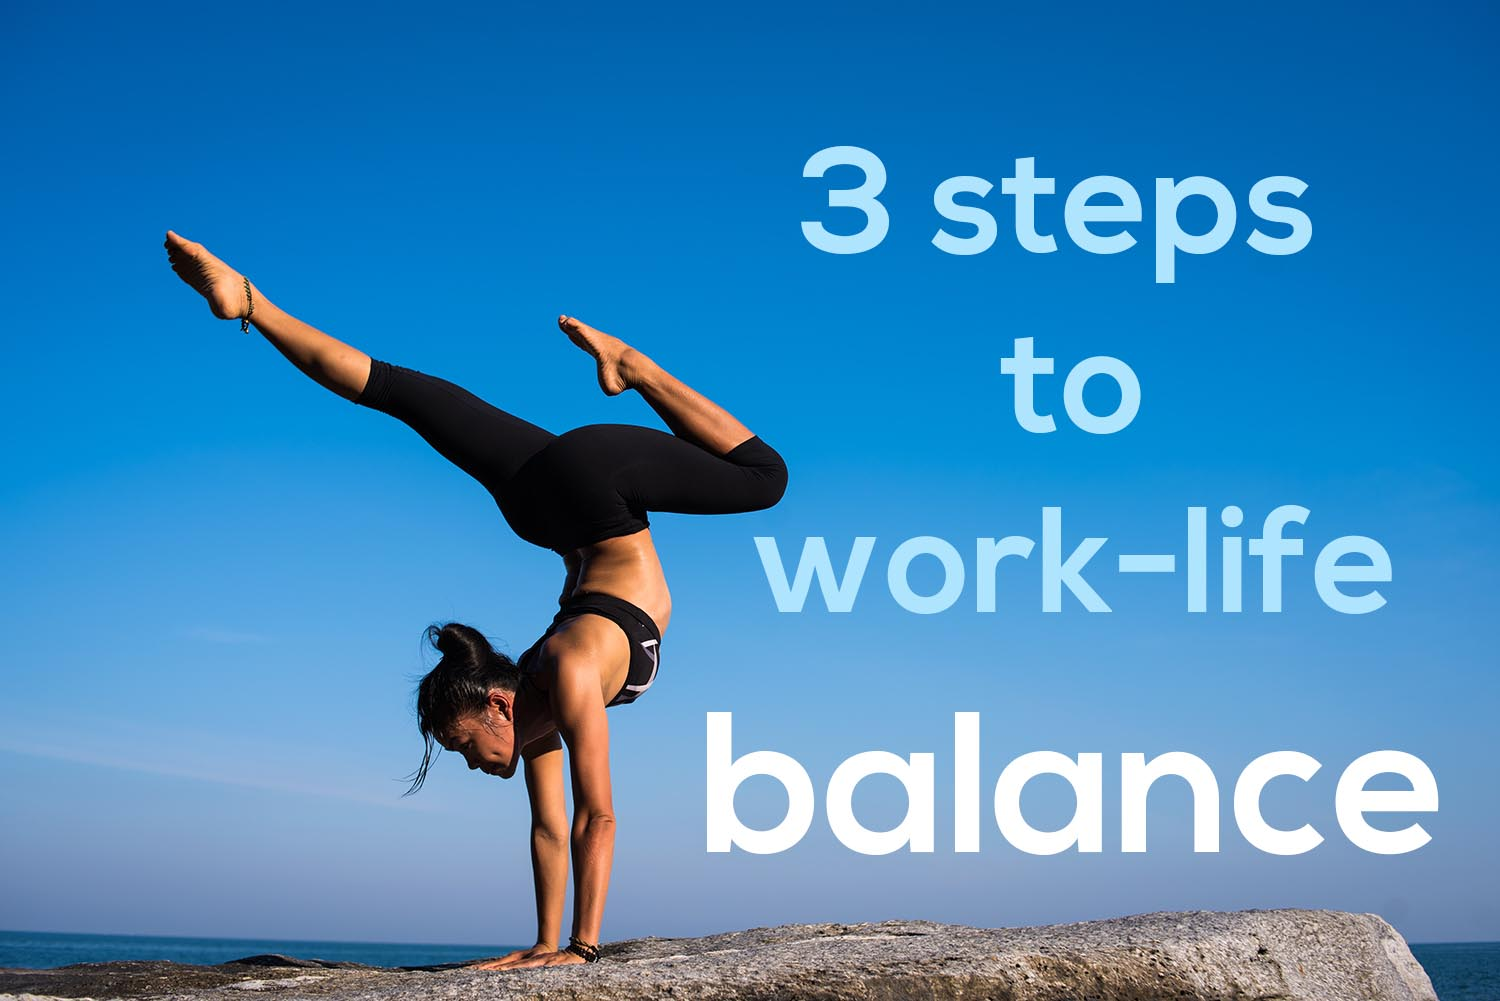 3 Steps to Work-Life Balance by Roxanne Williams